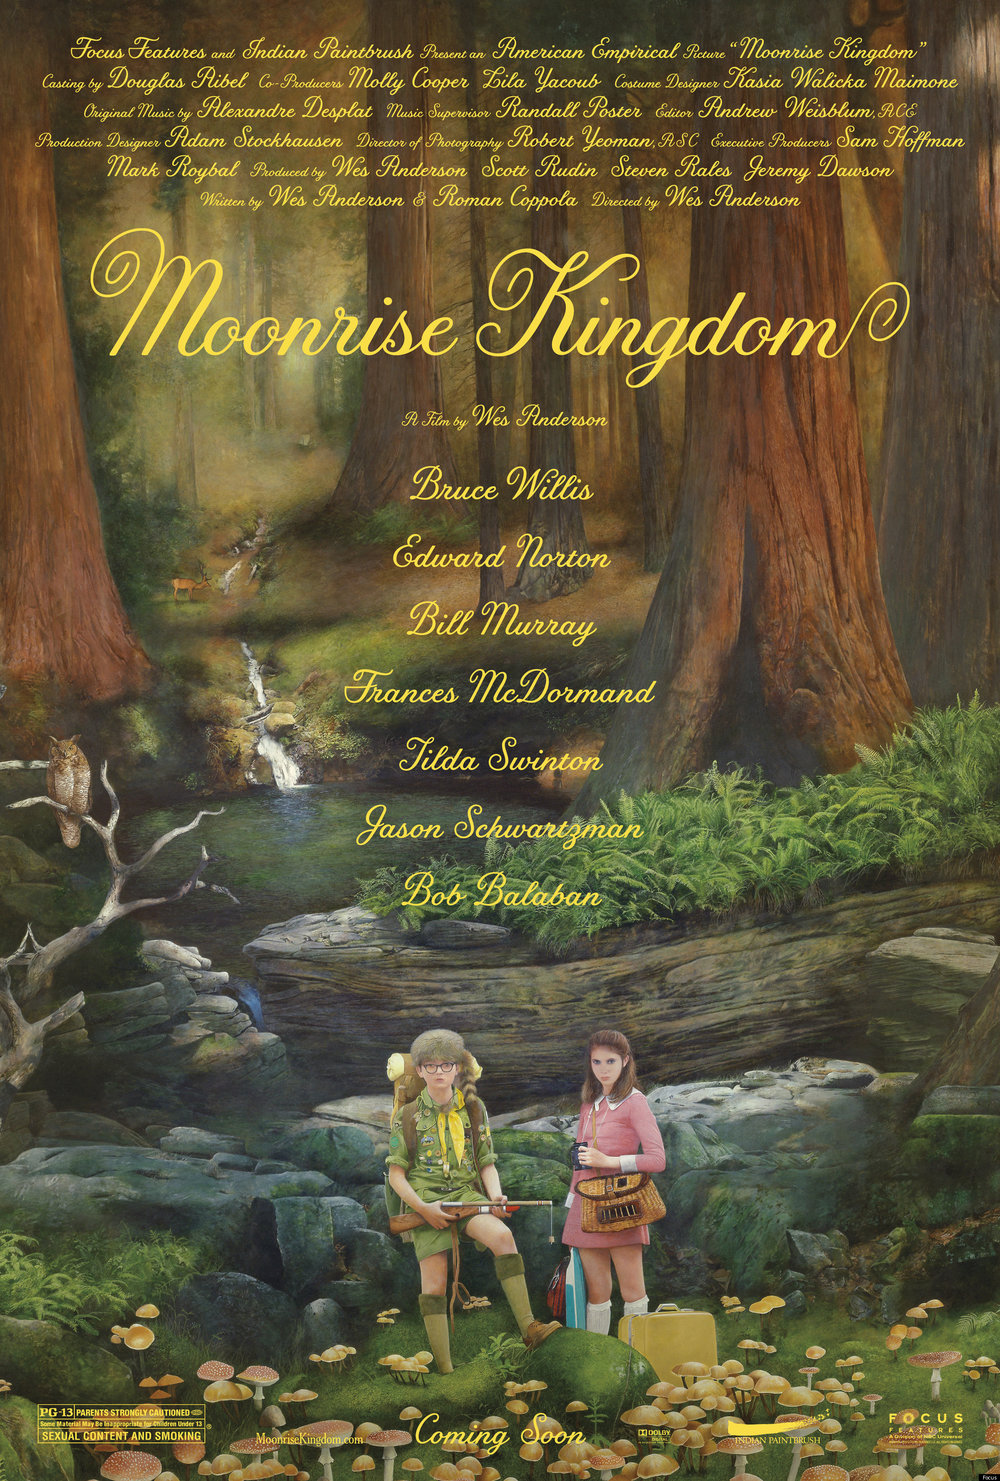 moonrise-kingdom-poster1.jpg